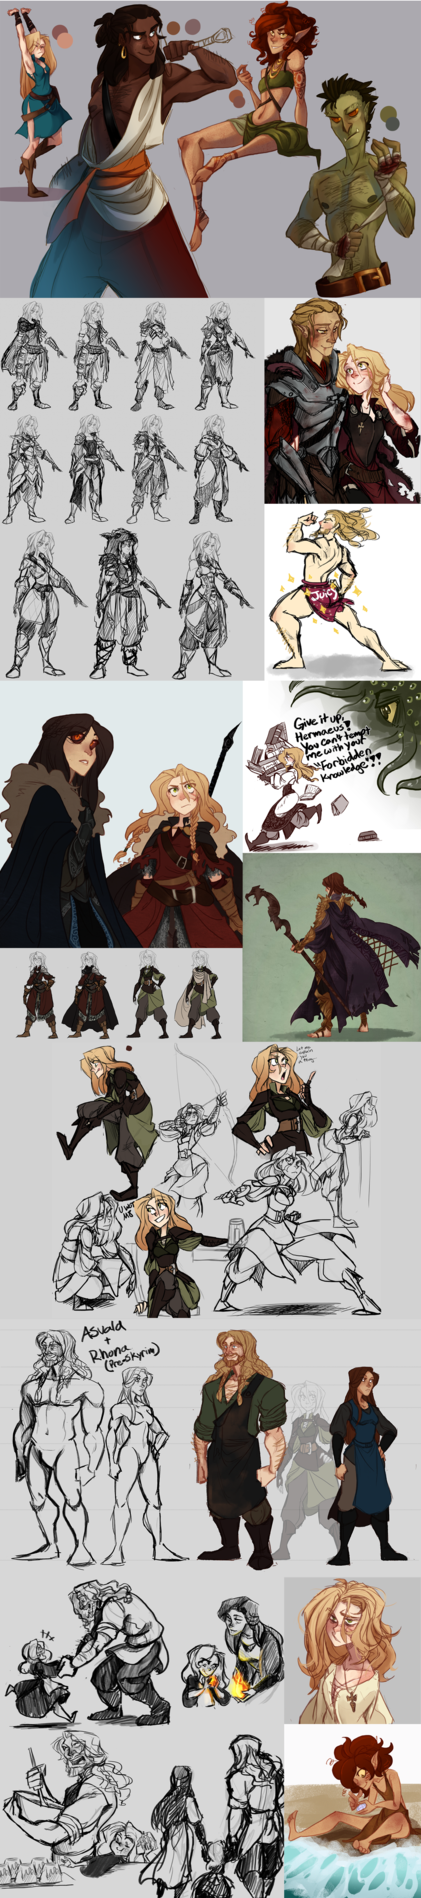 Top 40 Character Design Tips : Skyrimdump by the orator character design pinterest